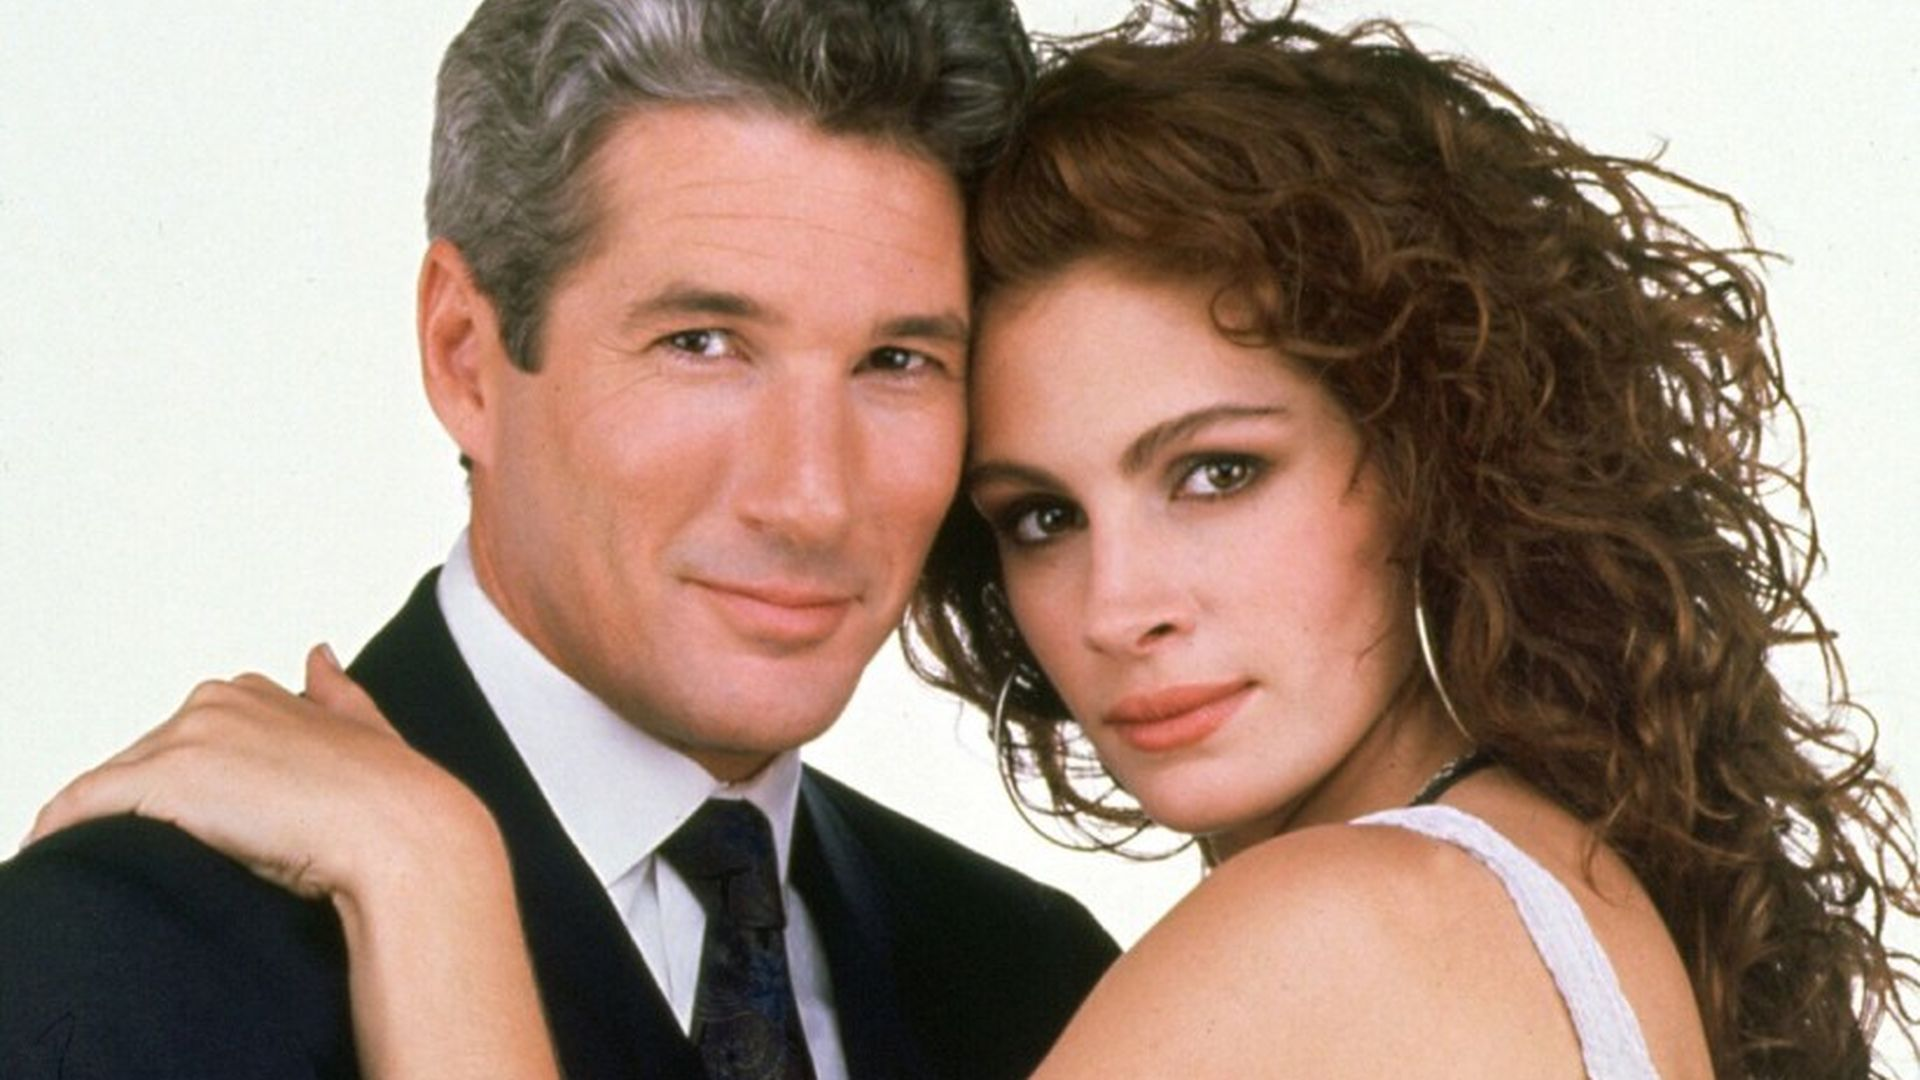 Richard Gere Mit Post-It Zu Pretty Woman Verfhrt -9096